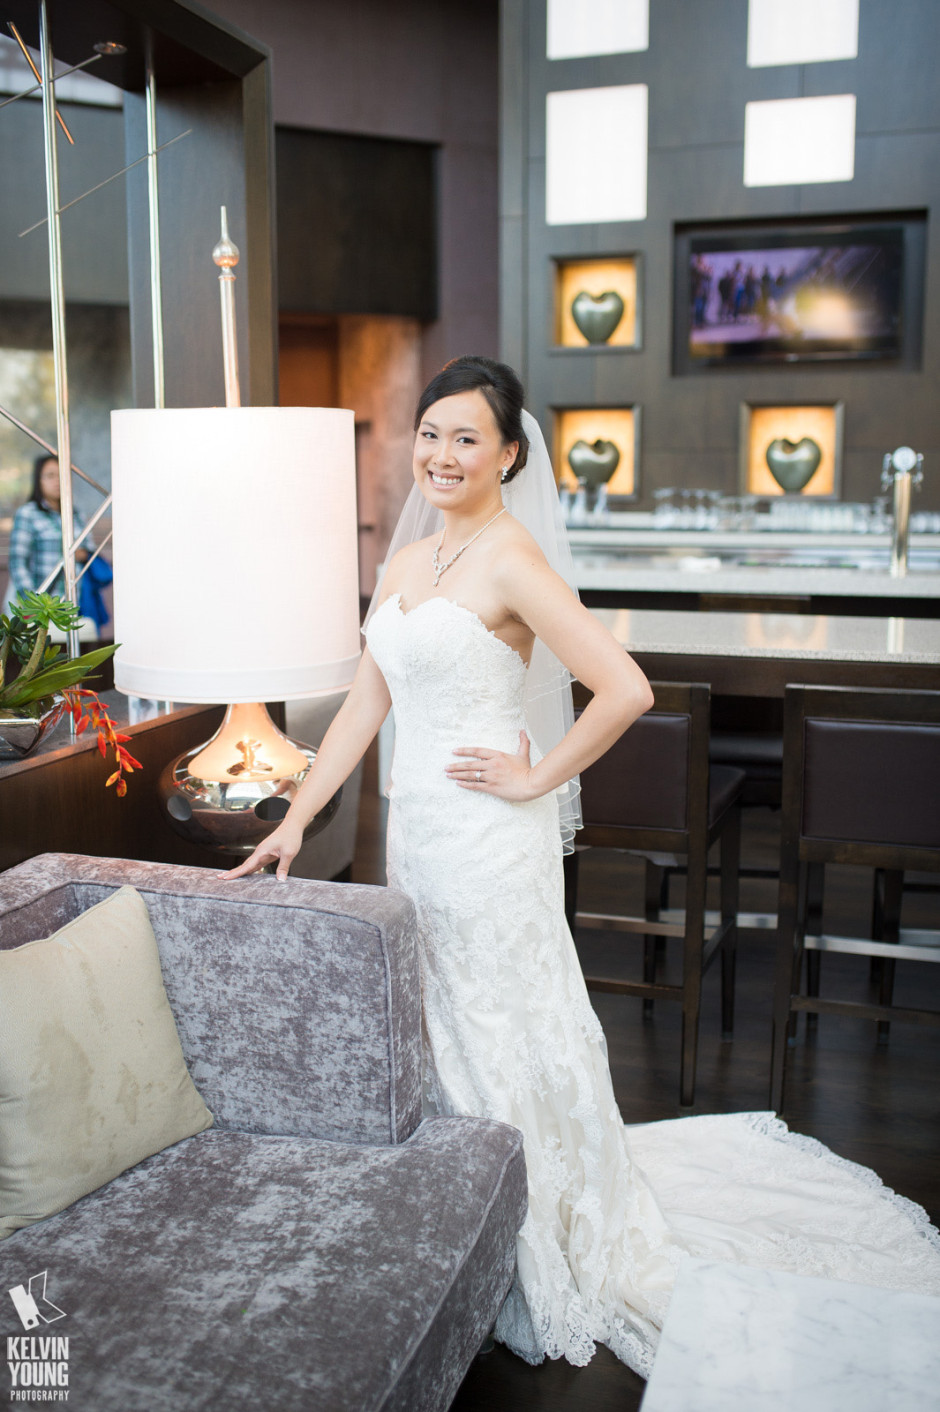 Joyce-Kelvin-Toronto-Markham-Wedding-Photography-012